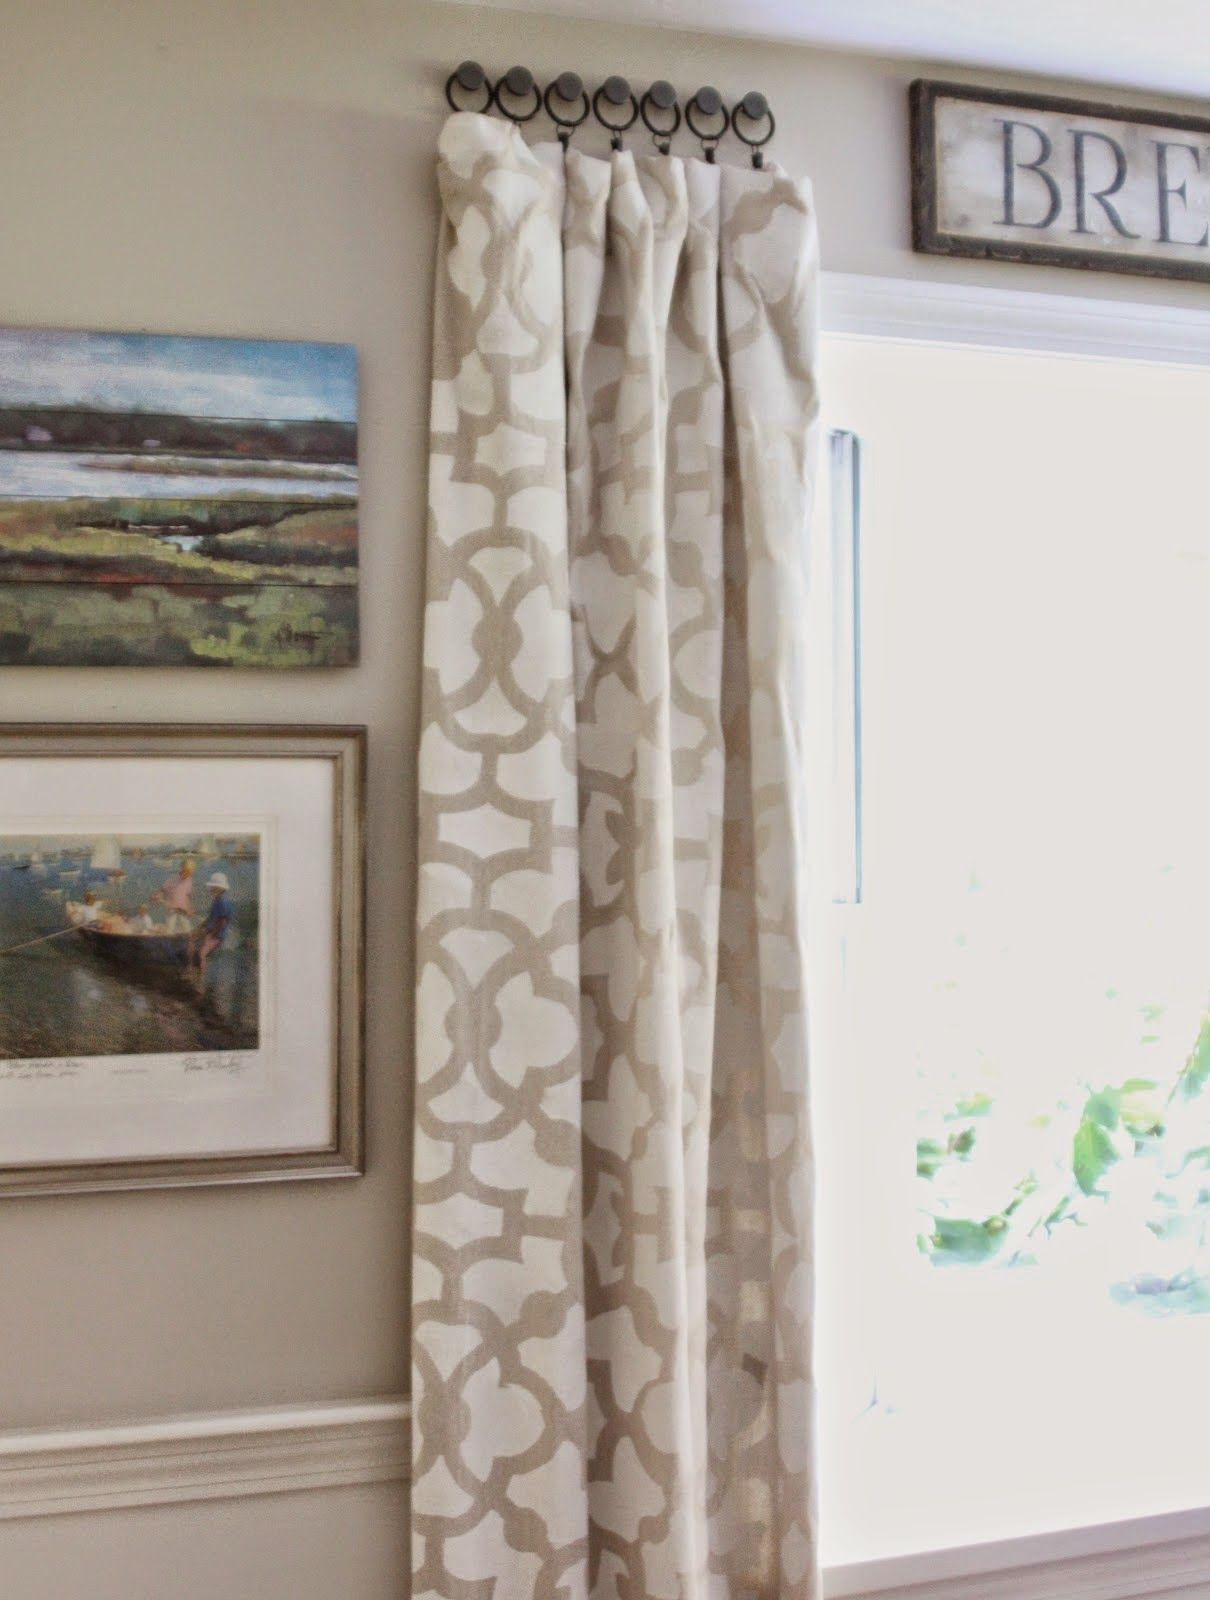 Short curtain rods for side panels - Simple Details Best Of The Nest August Link Party Panel Curtainsbedroom